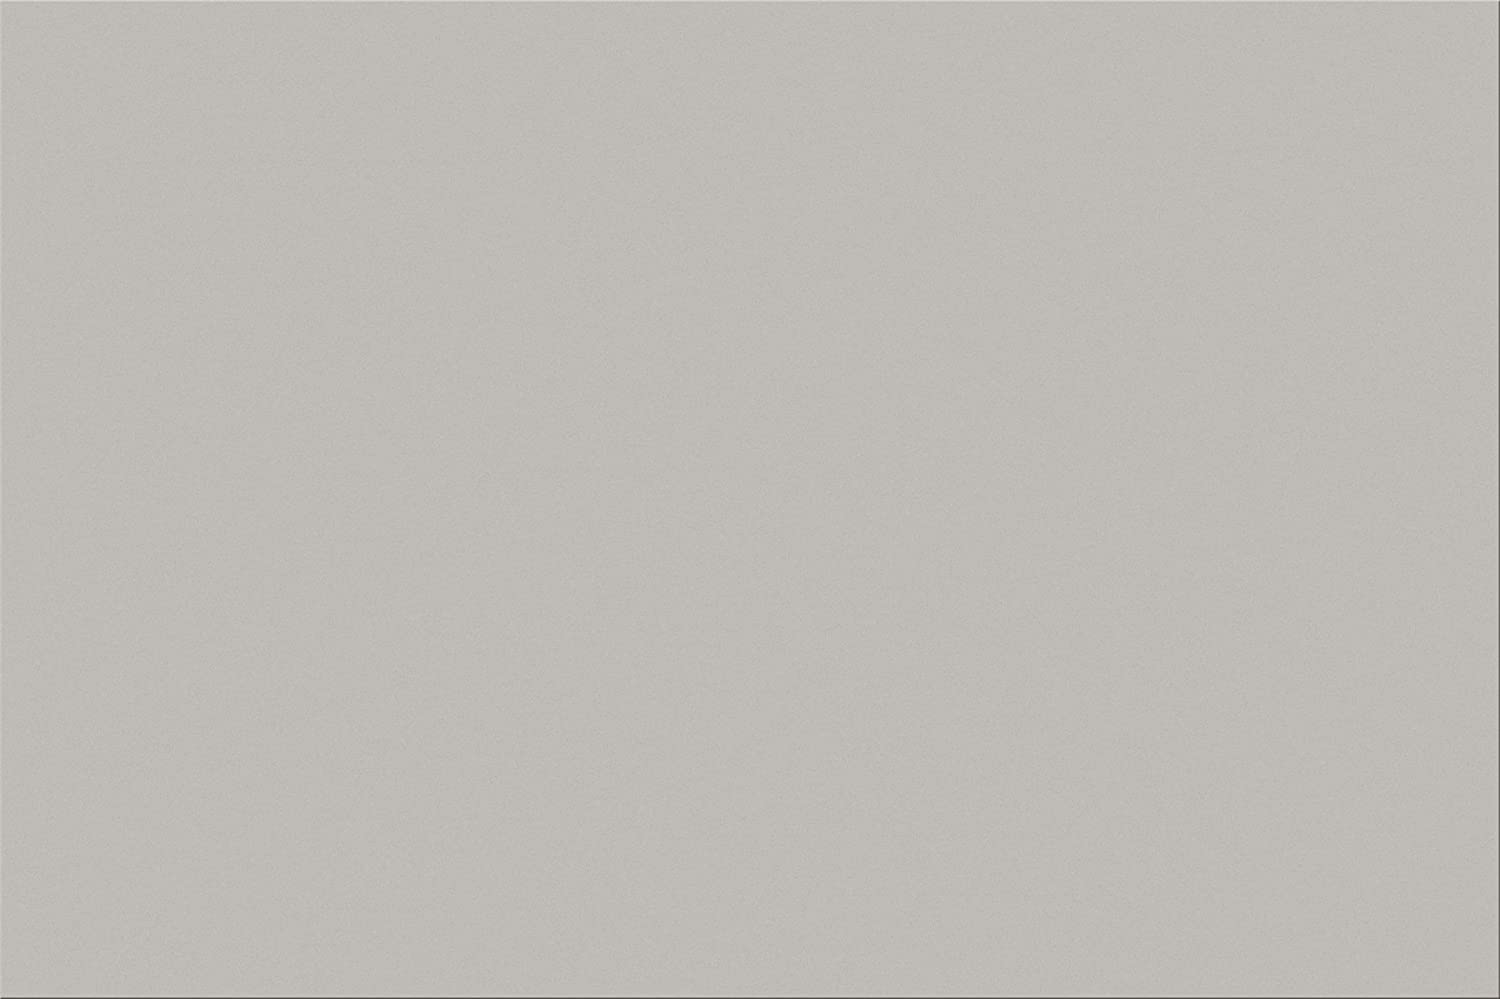 Pacon SunWorks Construction Paper, 12 x 18, 100-Count, Gray (8808) 12 x 18 Pacon Corp.